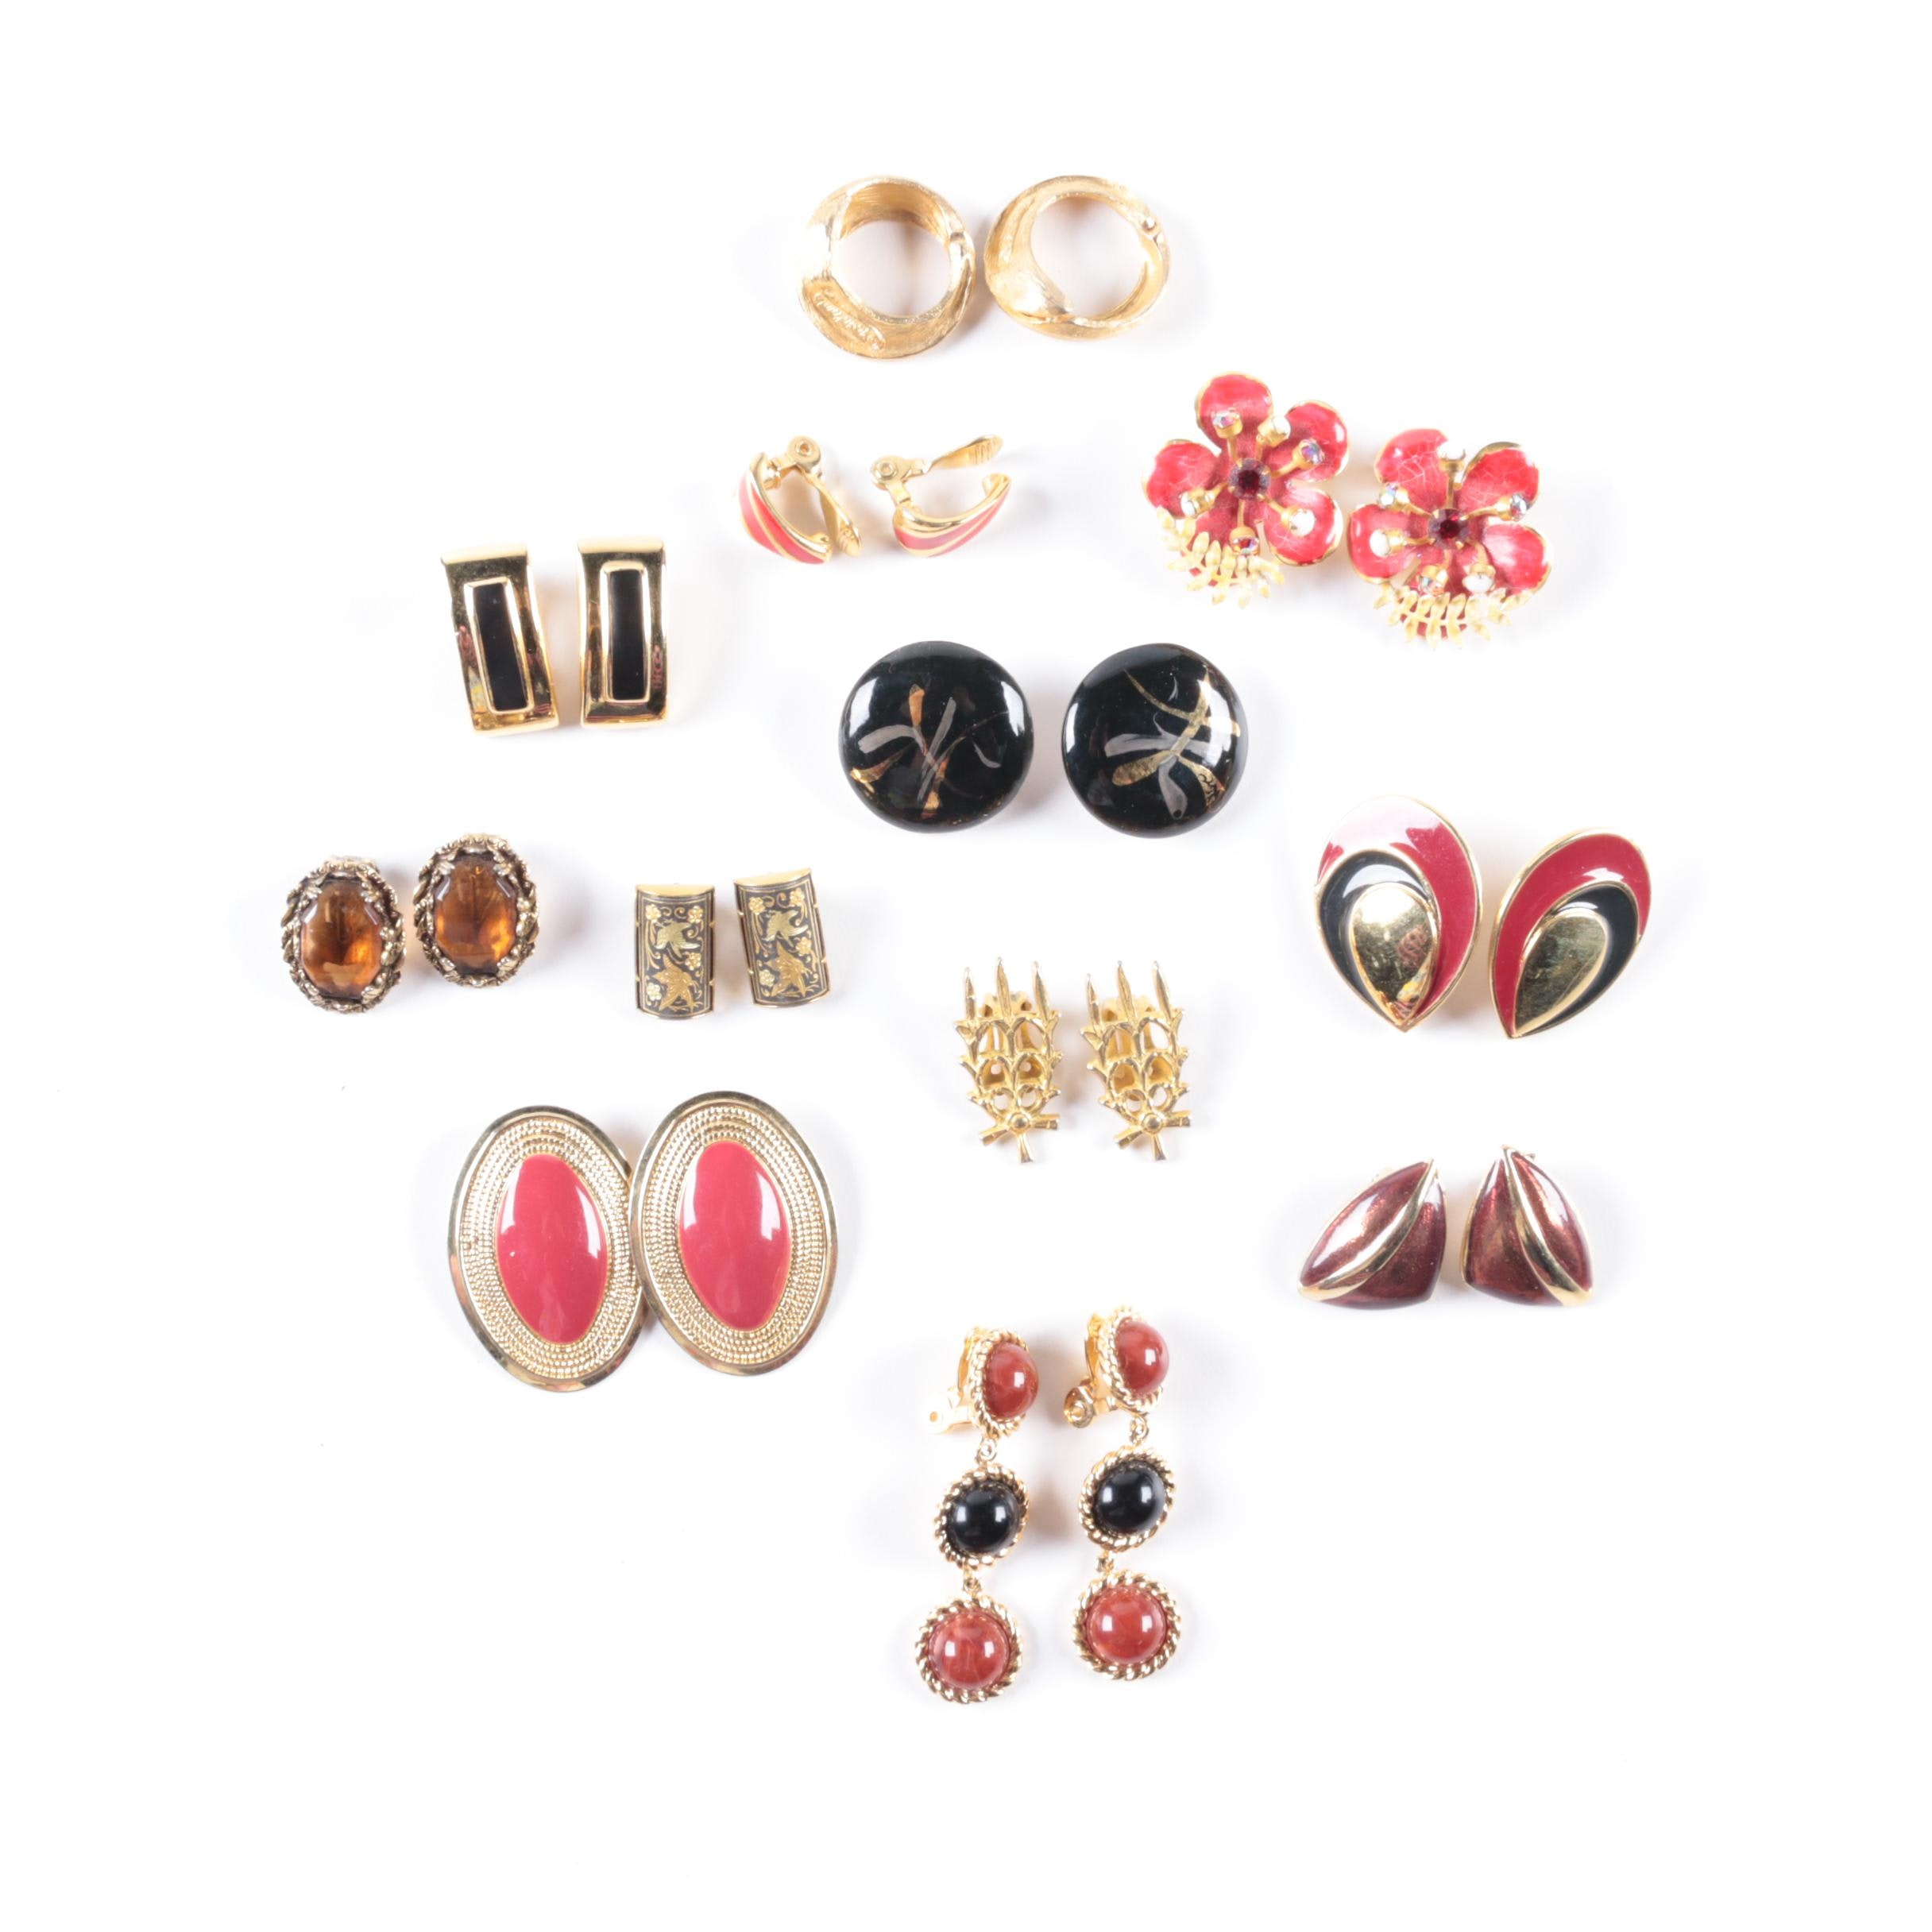 Vintage Gold-Toned Clip-On Earrings